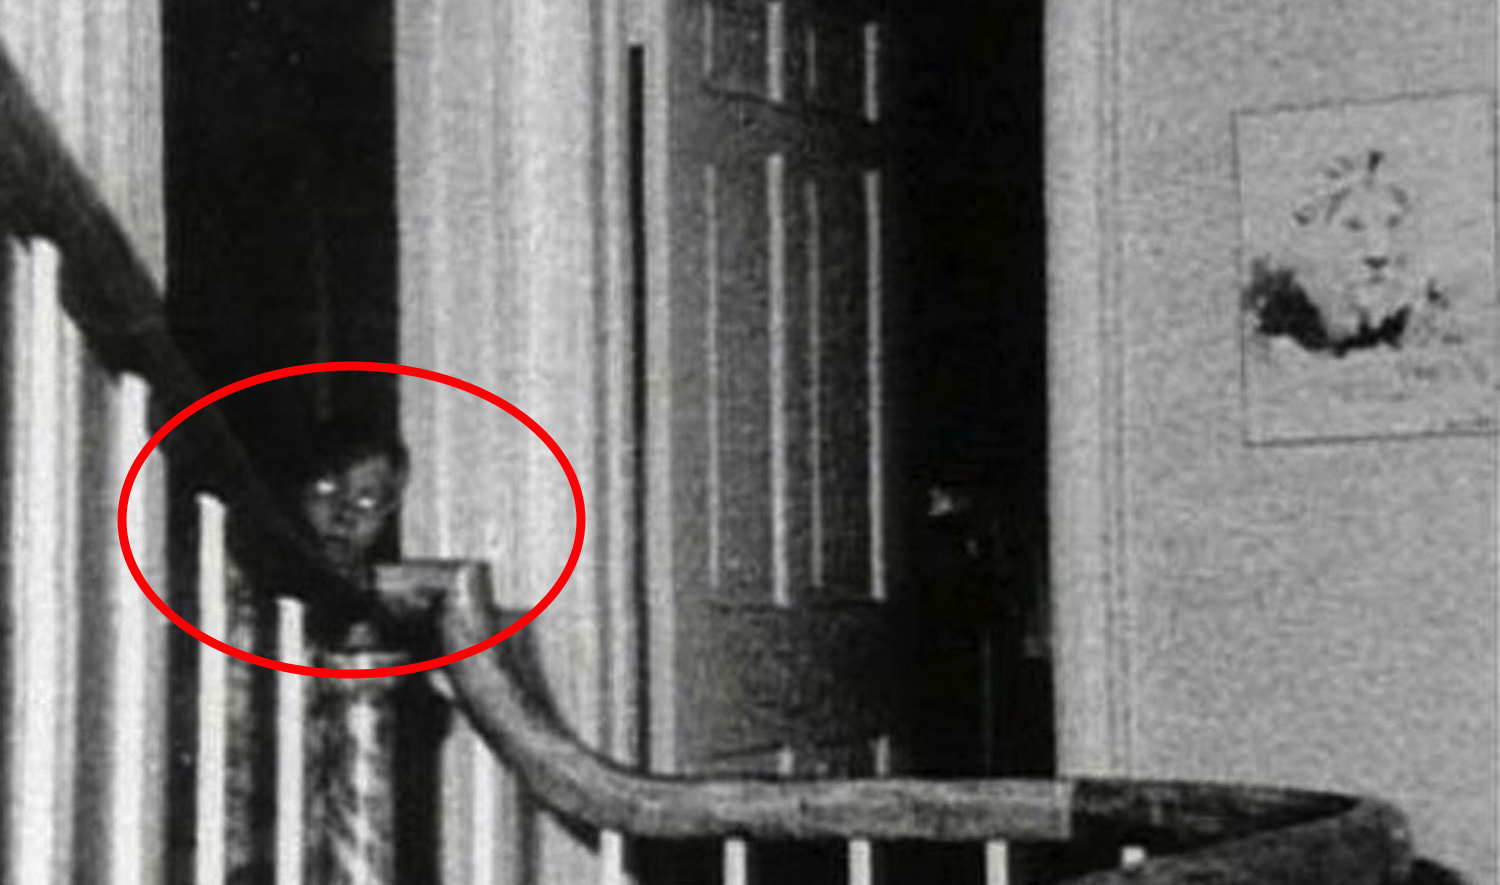 15 Of The Most Disturbing Pictures That Will Haunt You